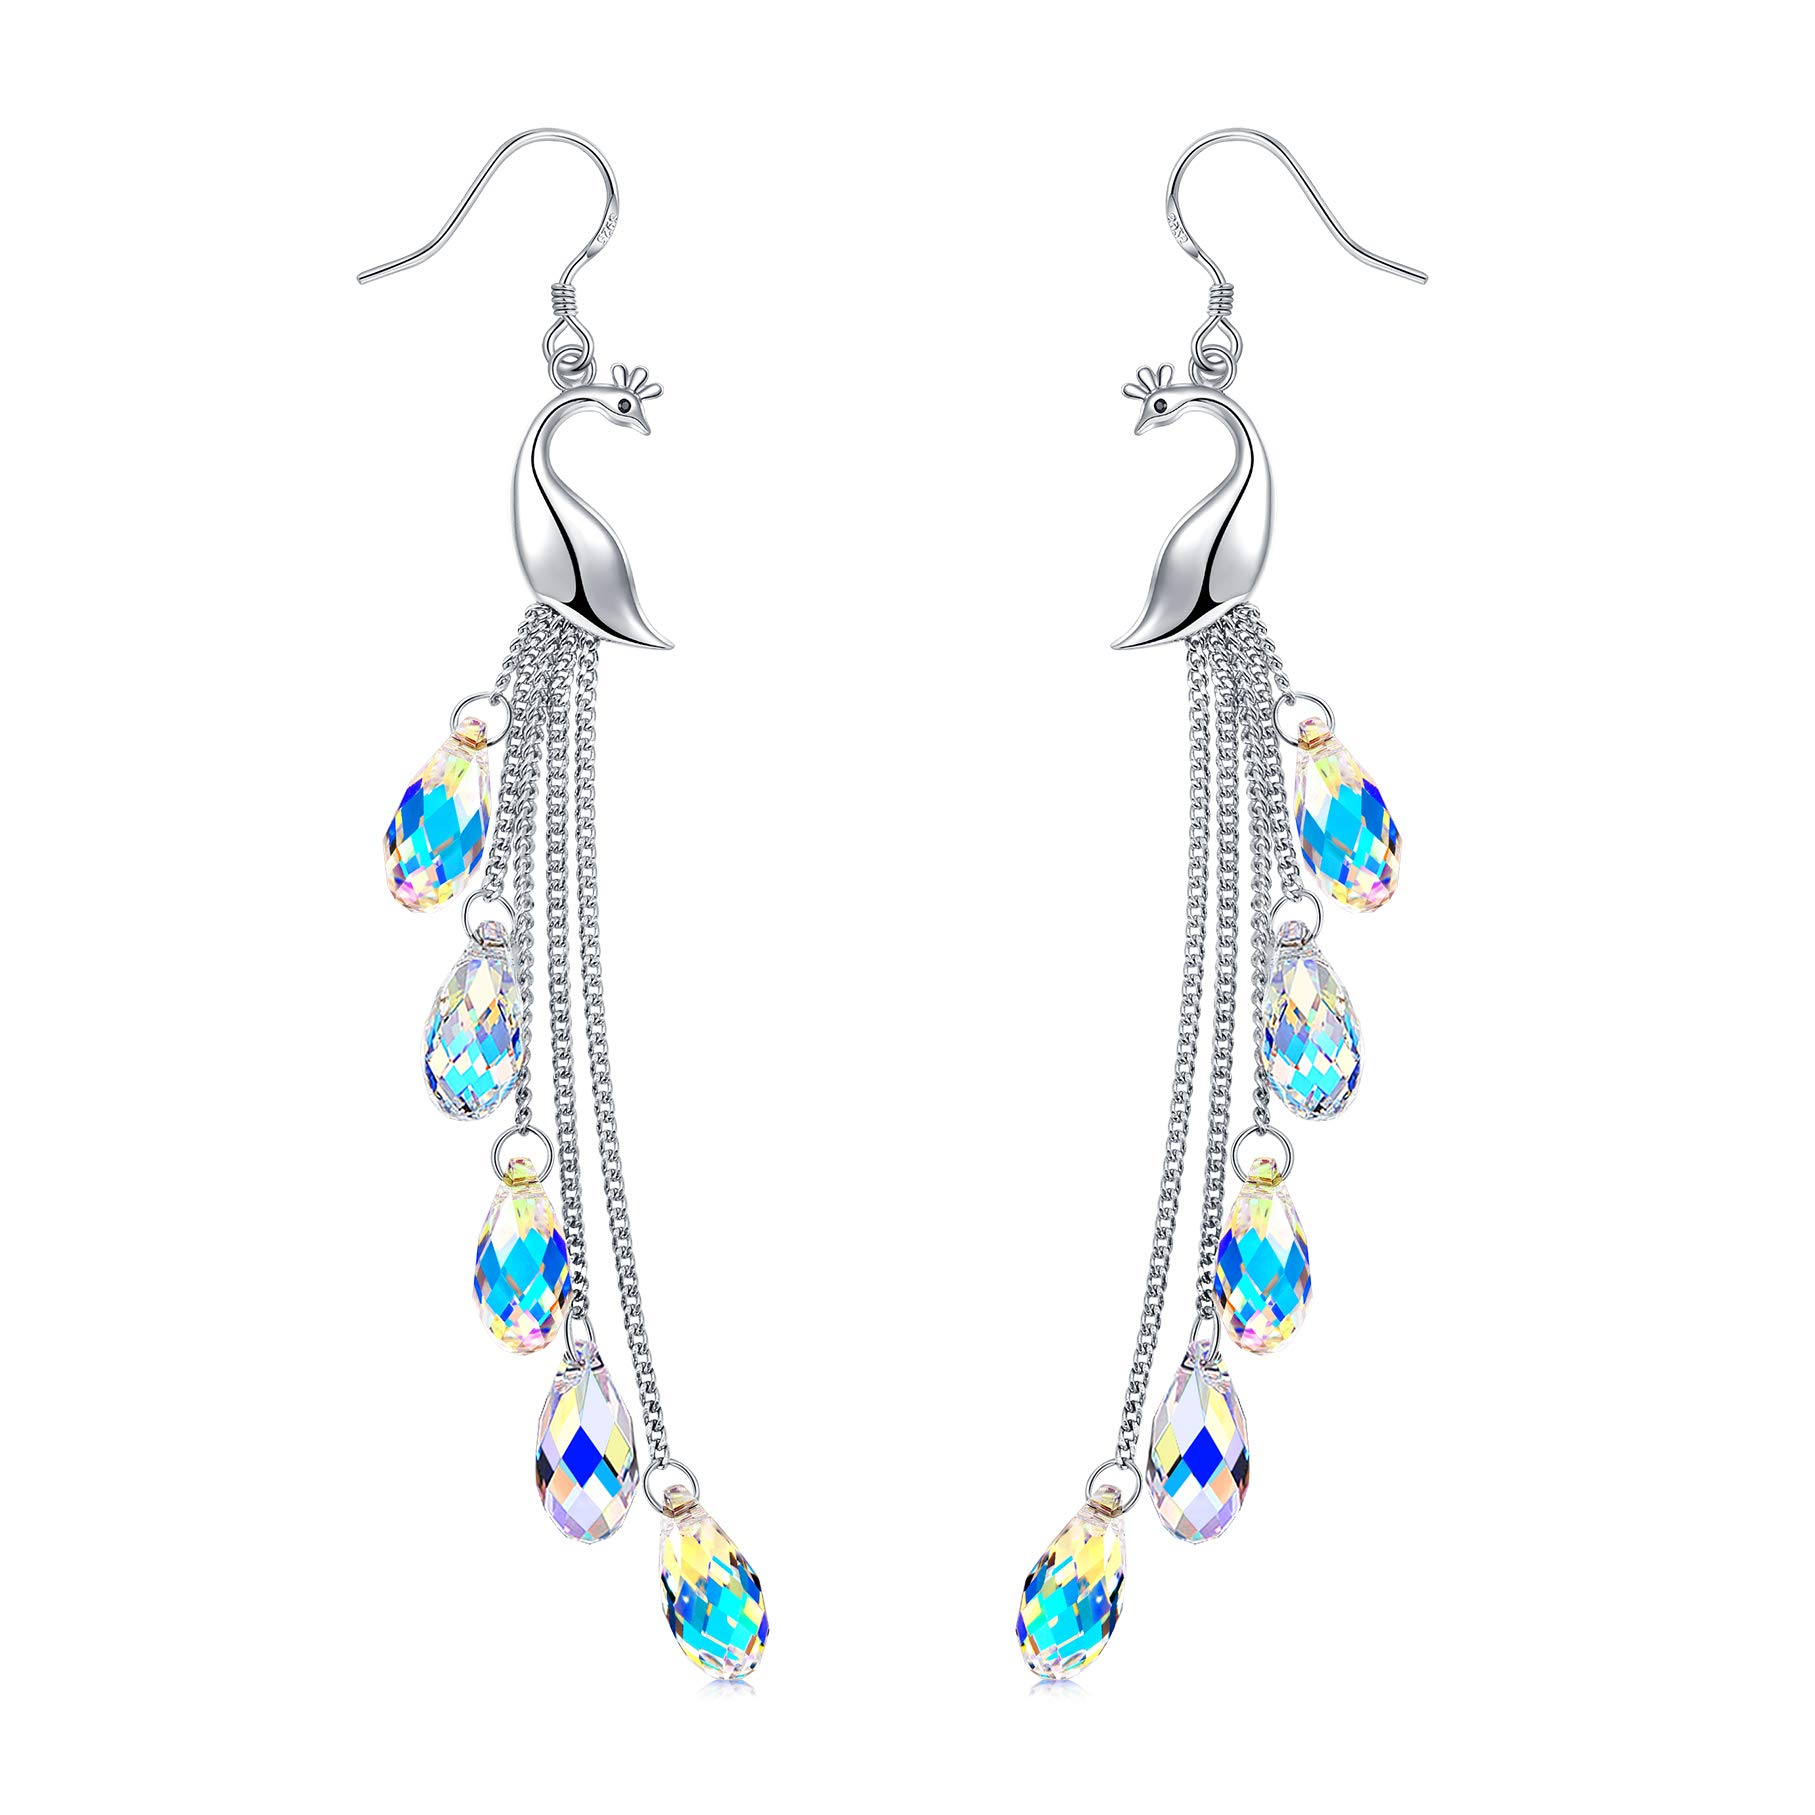 Sterling Silver Peacock Dangle Earrings With Swarovski Crystal, Jewelry Gift for Women Girls